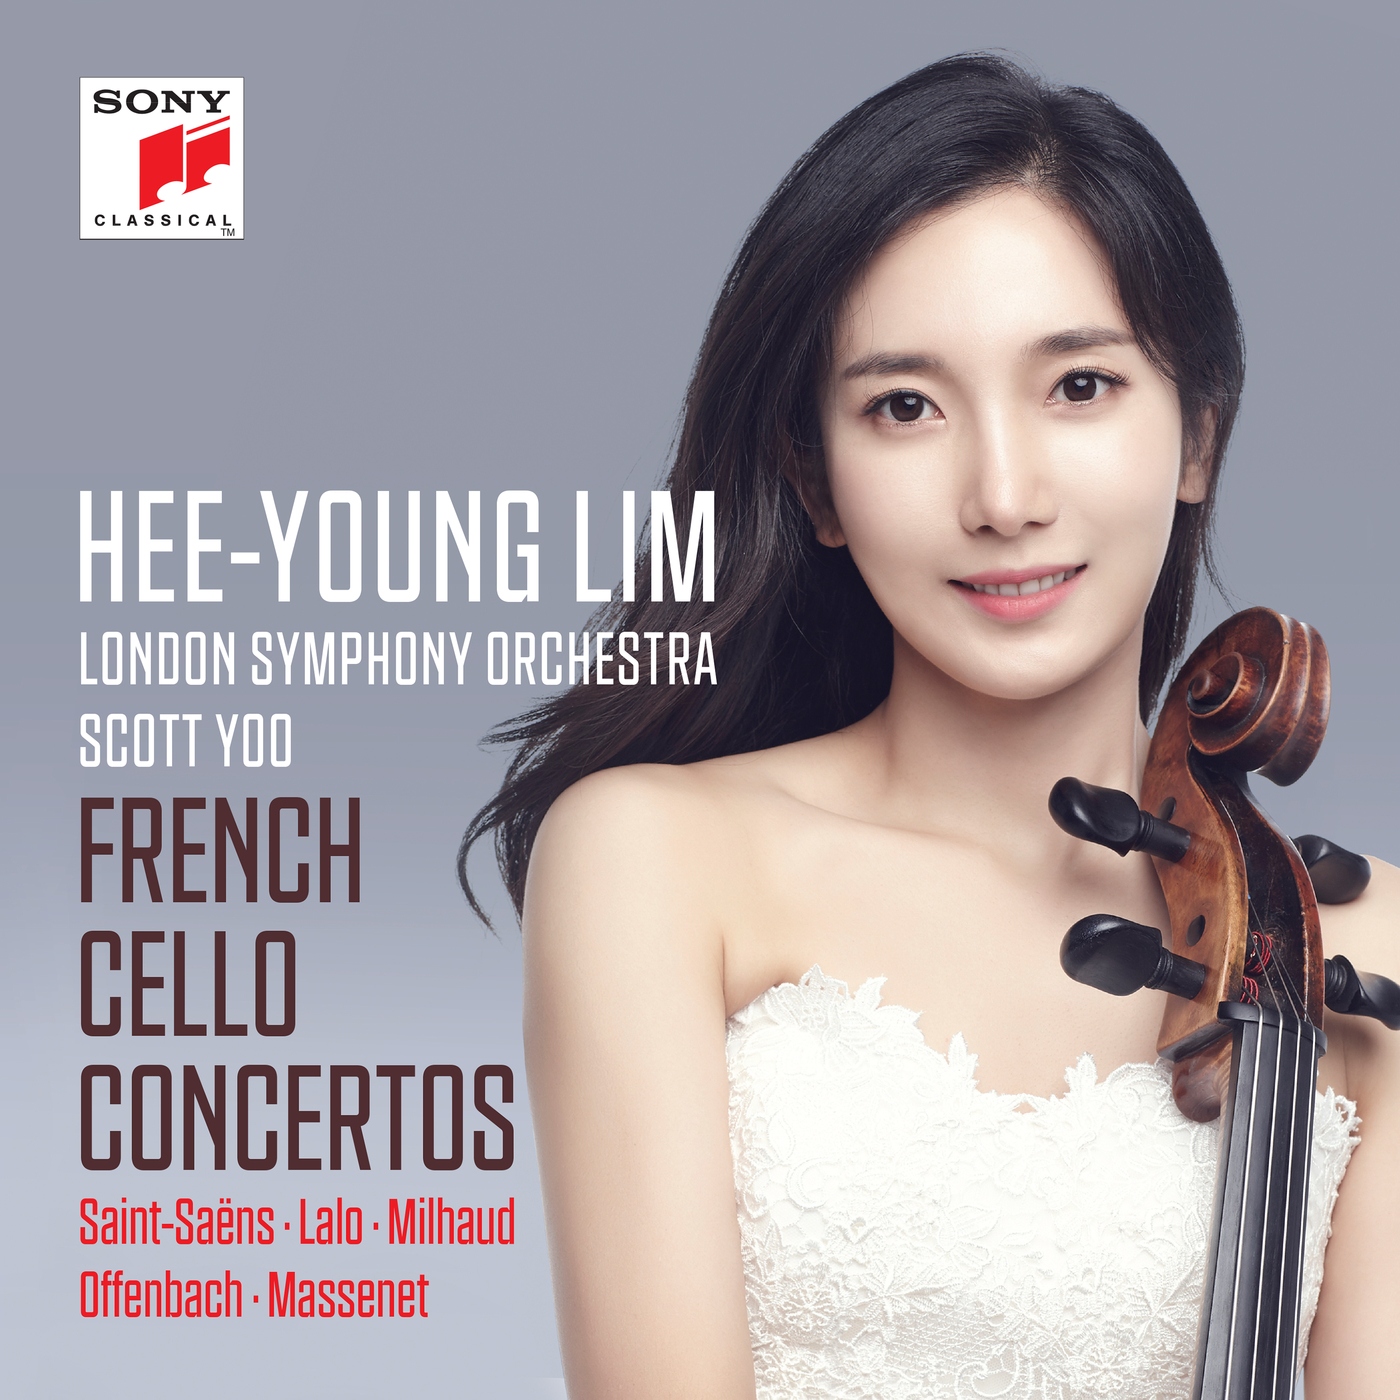 French Cello Concertos - Hee-young Lim